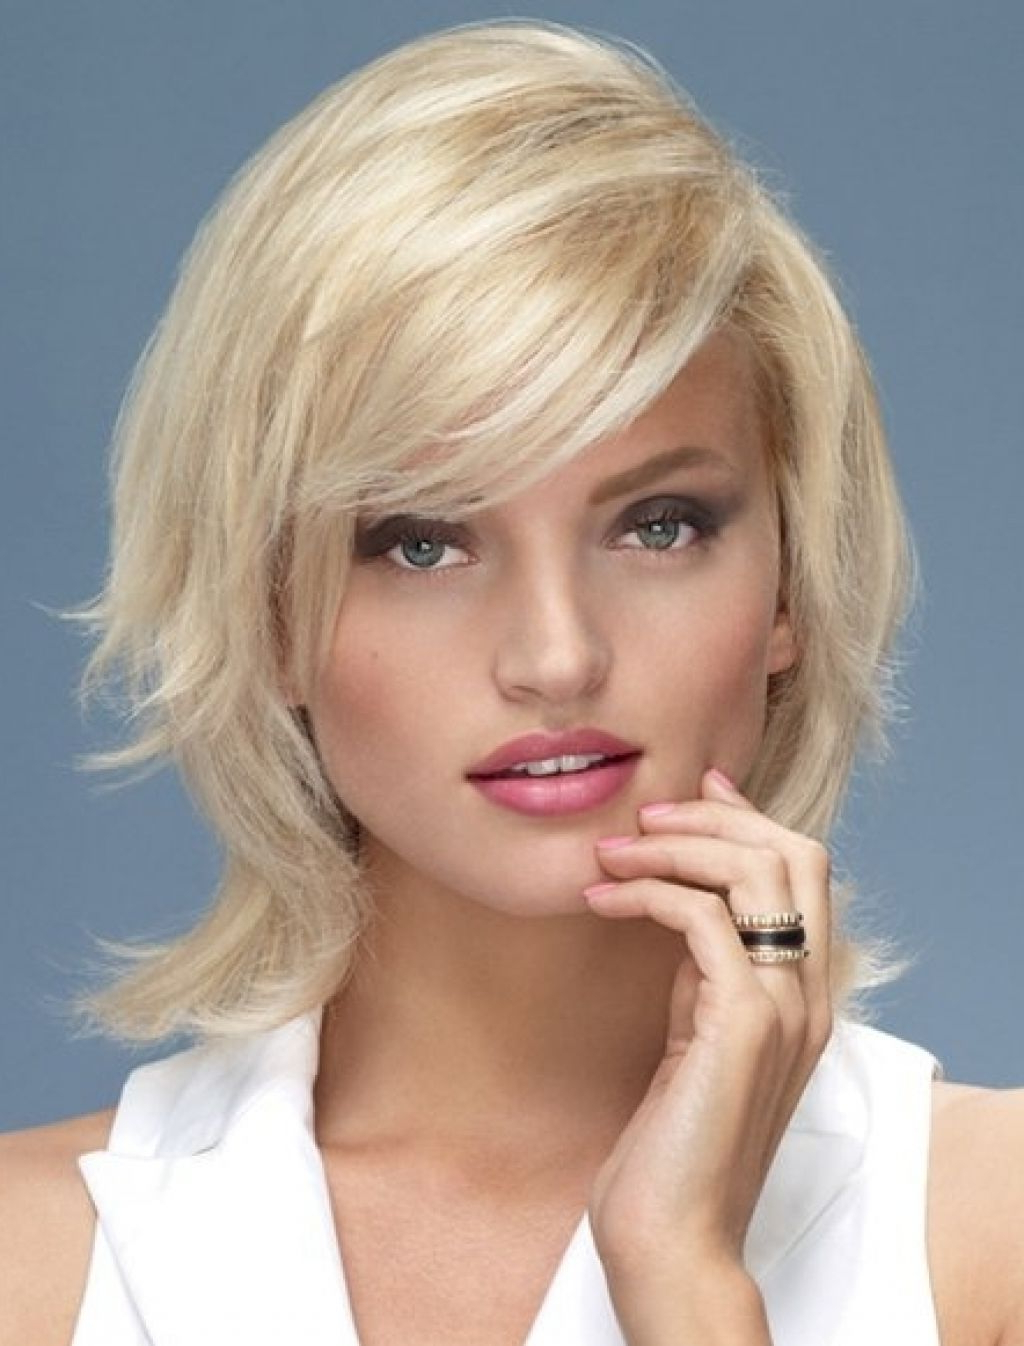 Medium Short Hairstyles Round Faces – Hairstyle For Women & Man In Medium Short Hairstyles Round Faces (View 5 of 25)